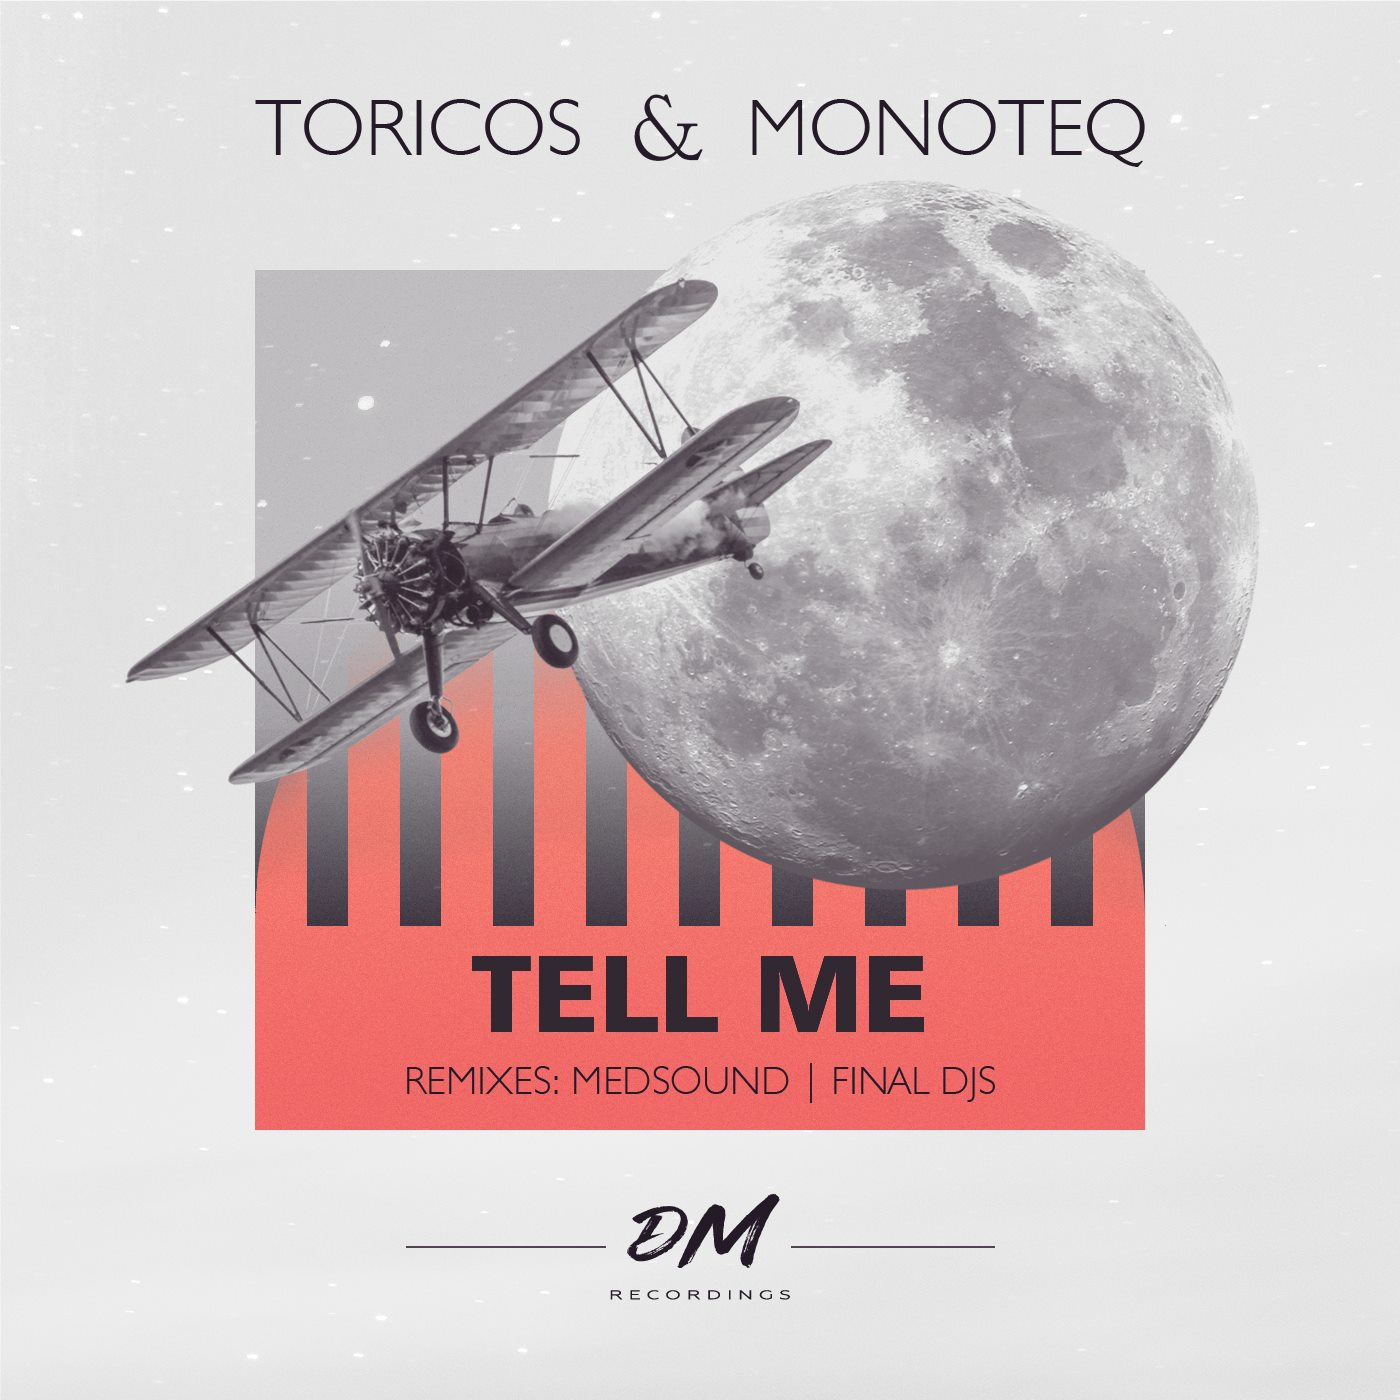 Toricos & Monoteq - Tell Me | Final Djs Remix